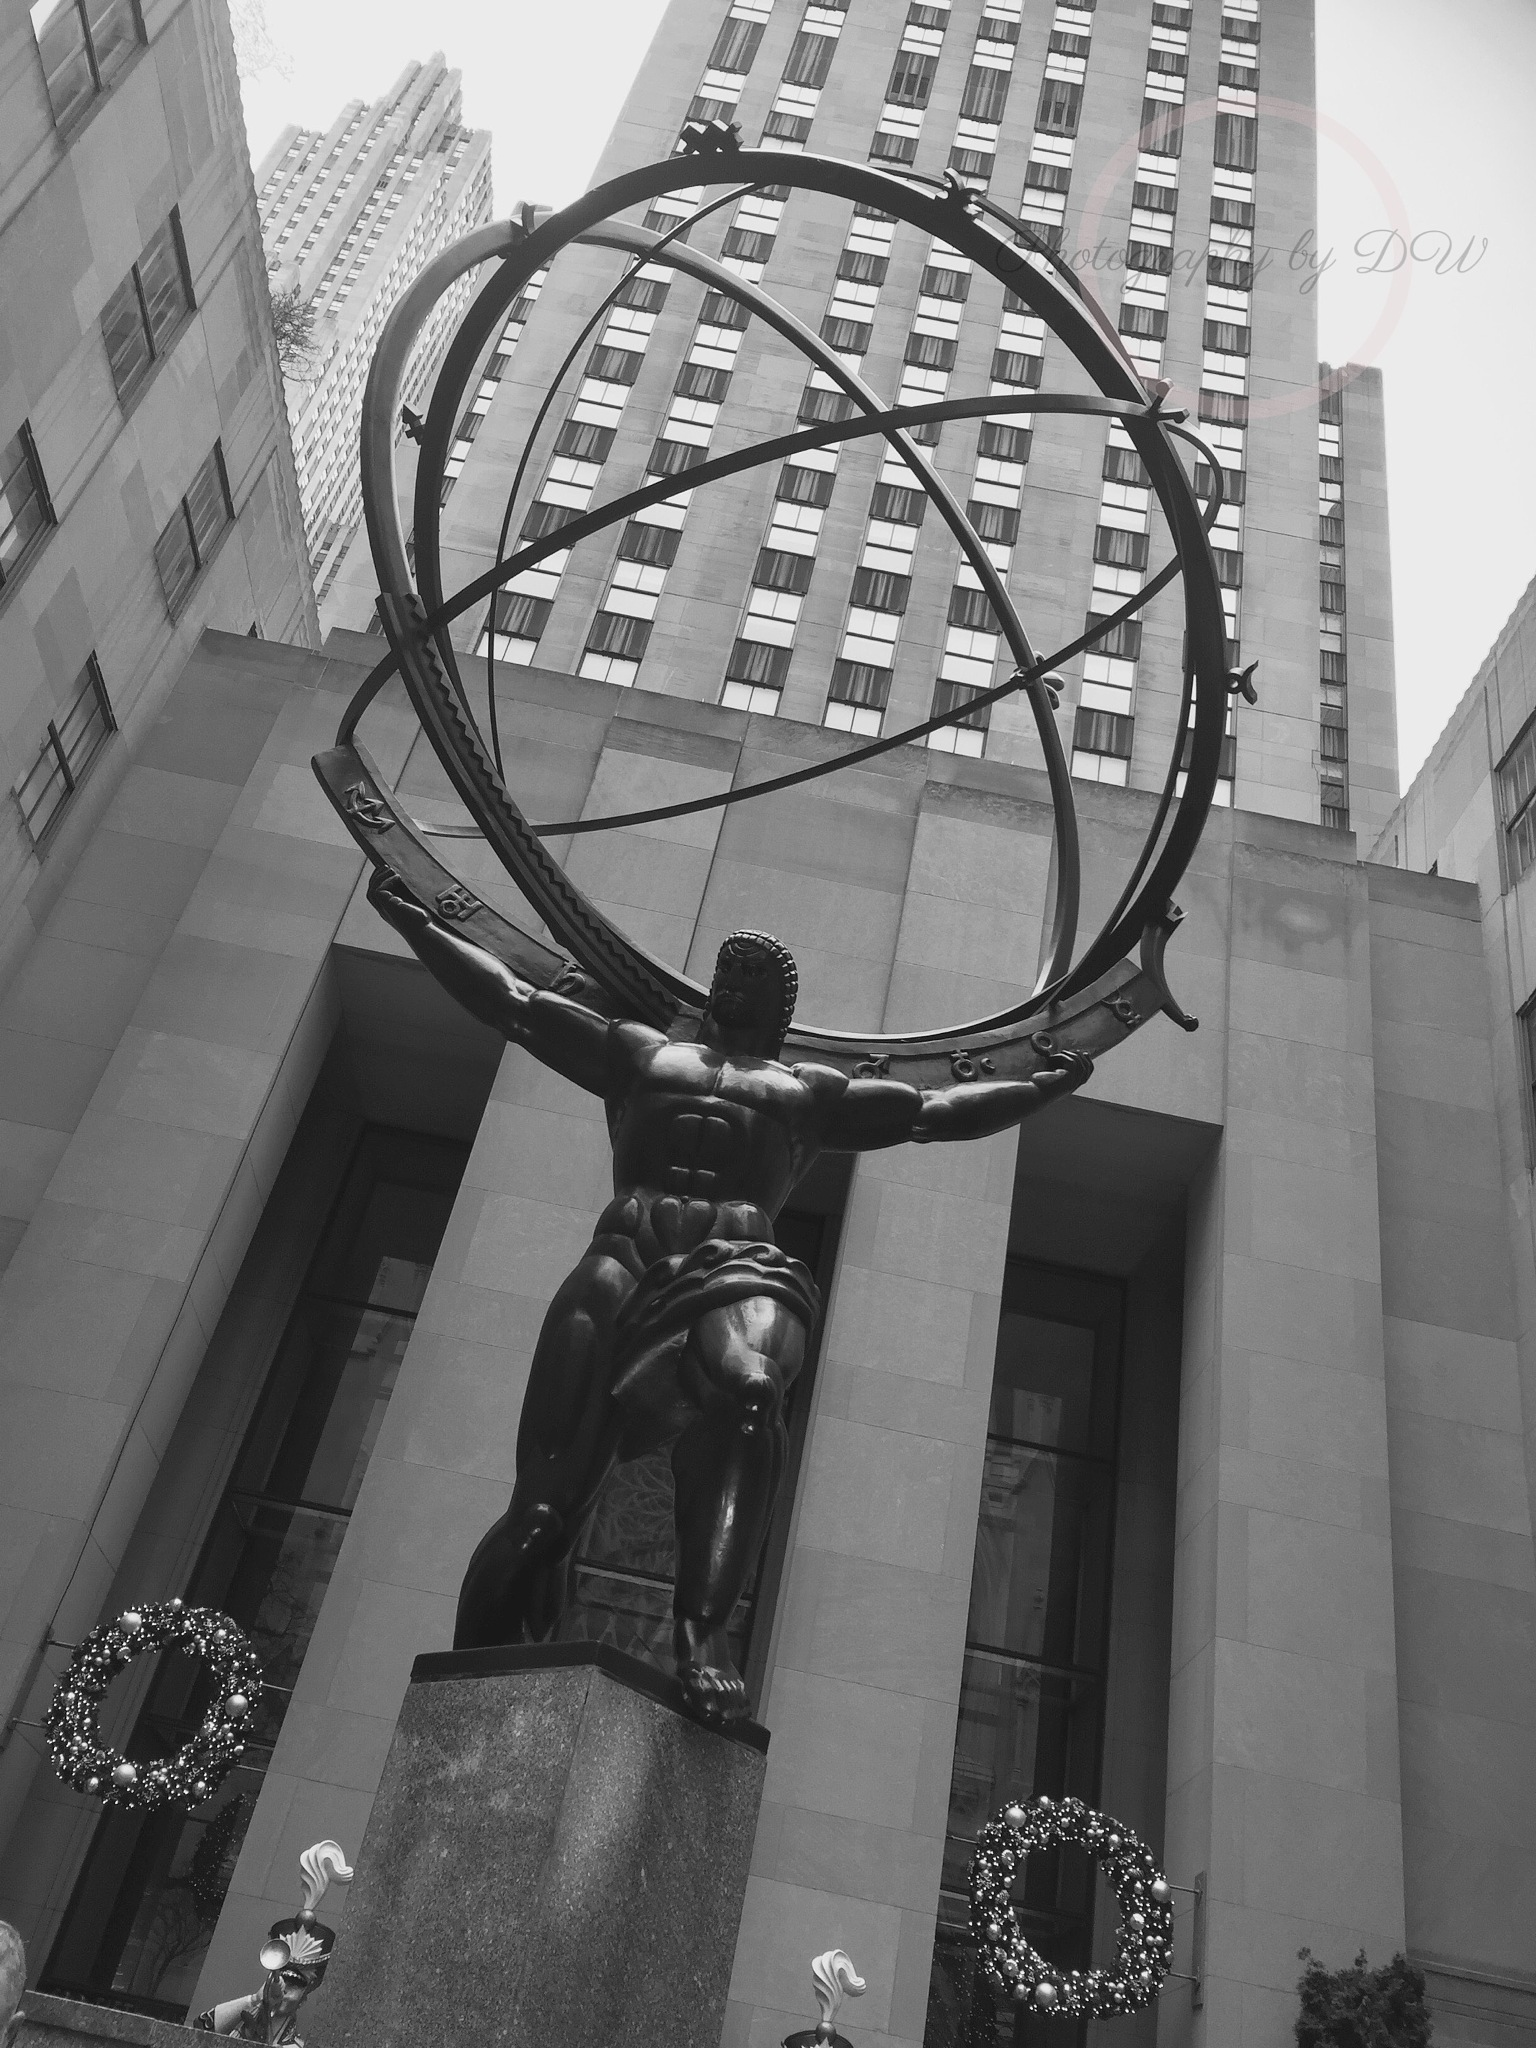 The world on his shoulders - New York - The statue of Atlas by Desirée Wahlhed